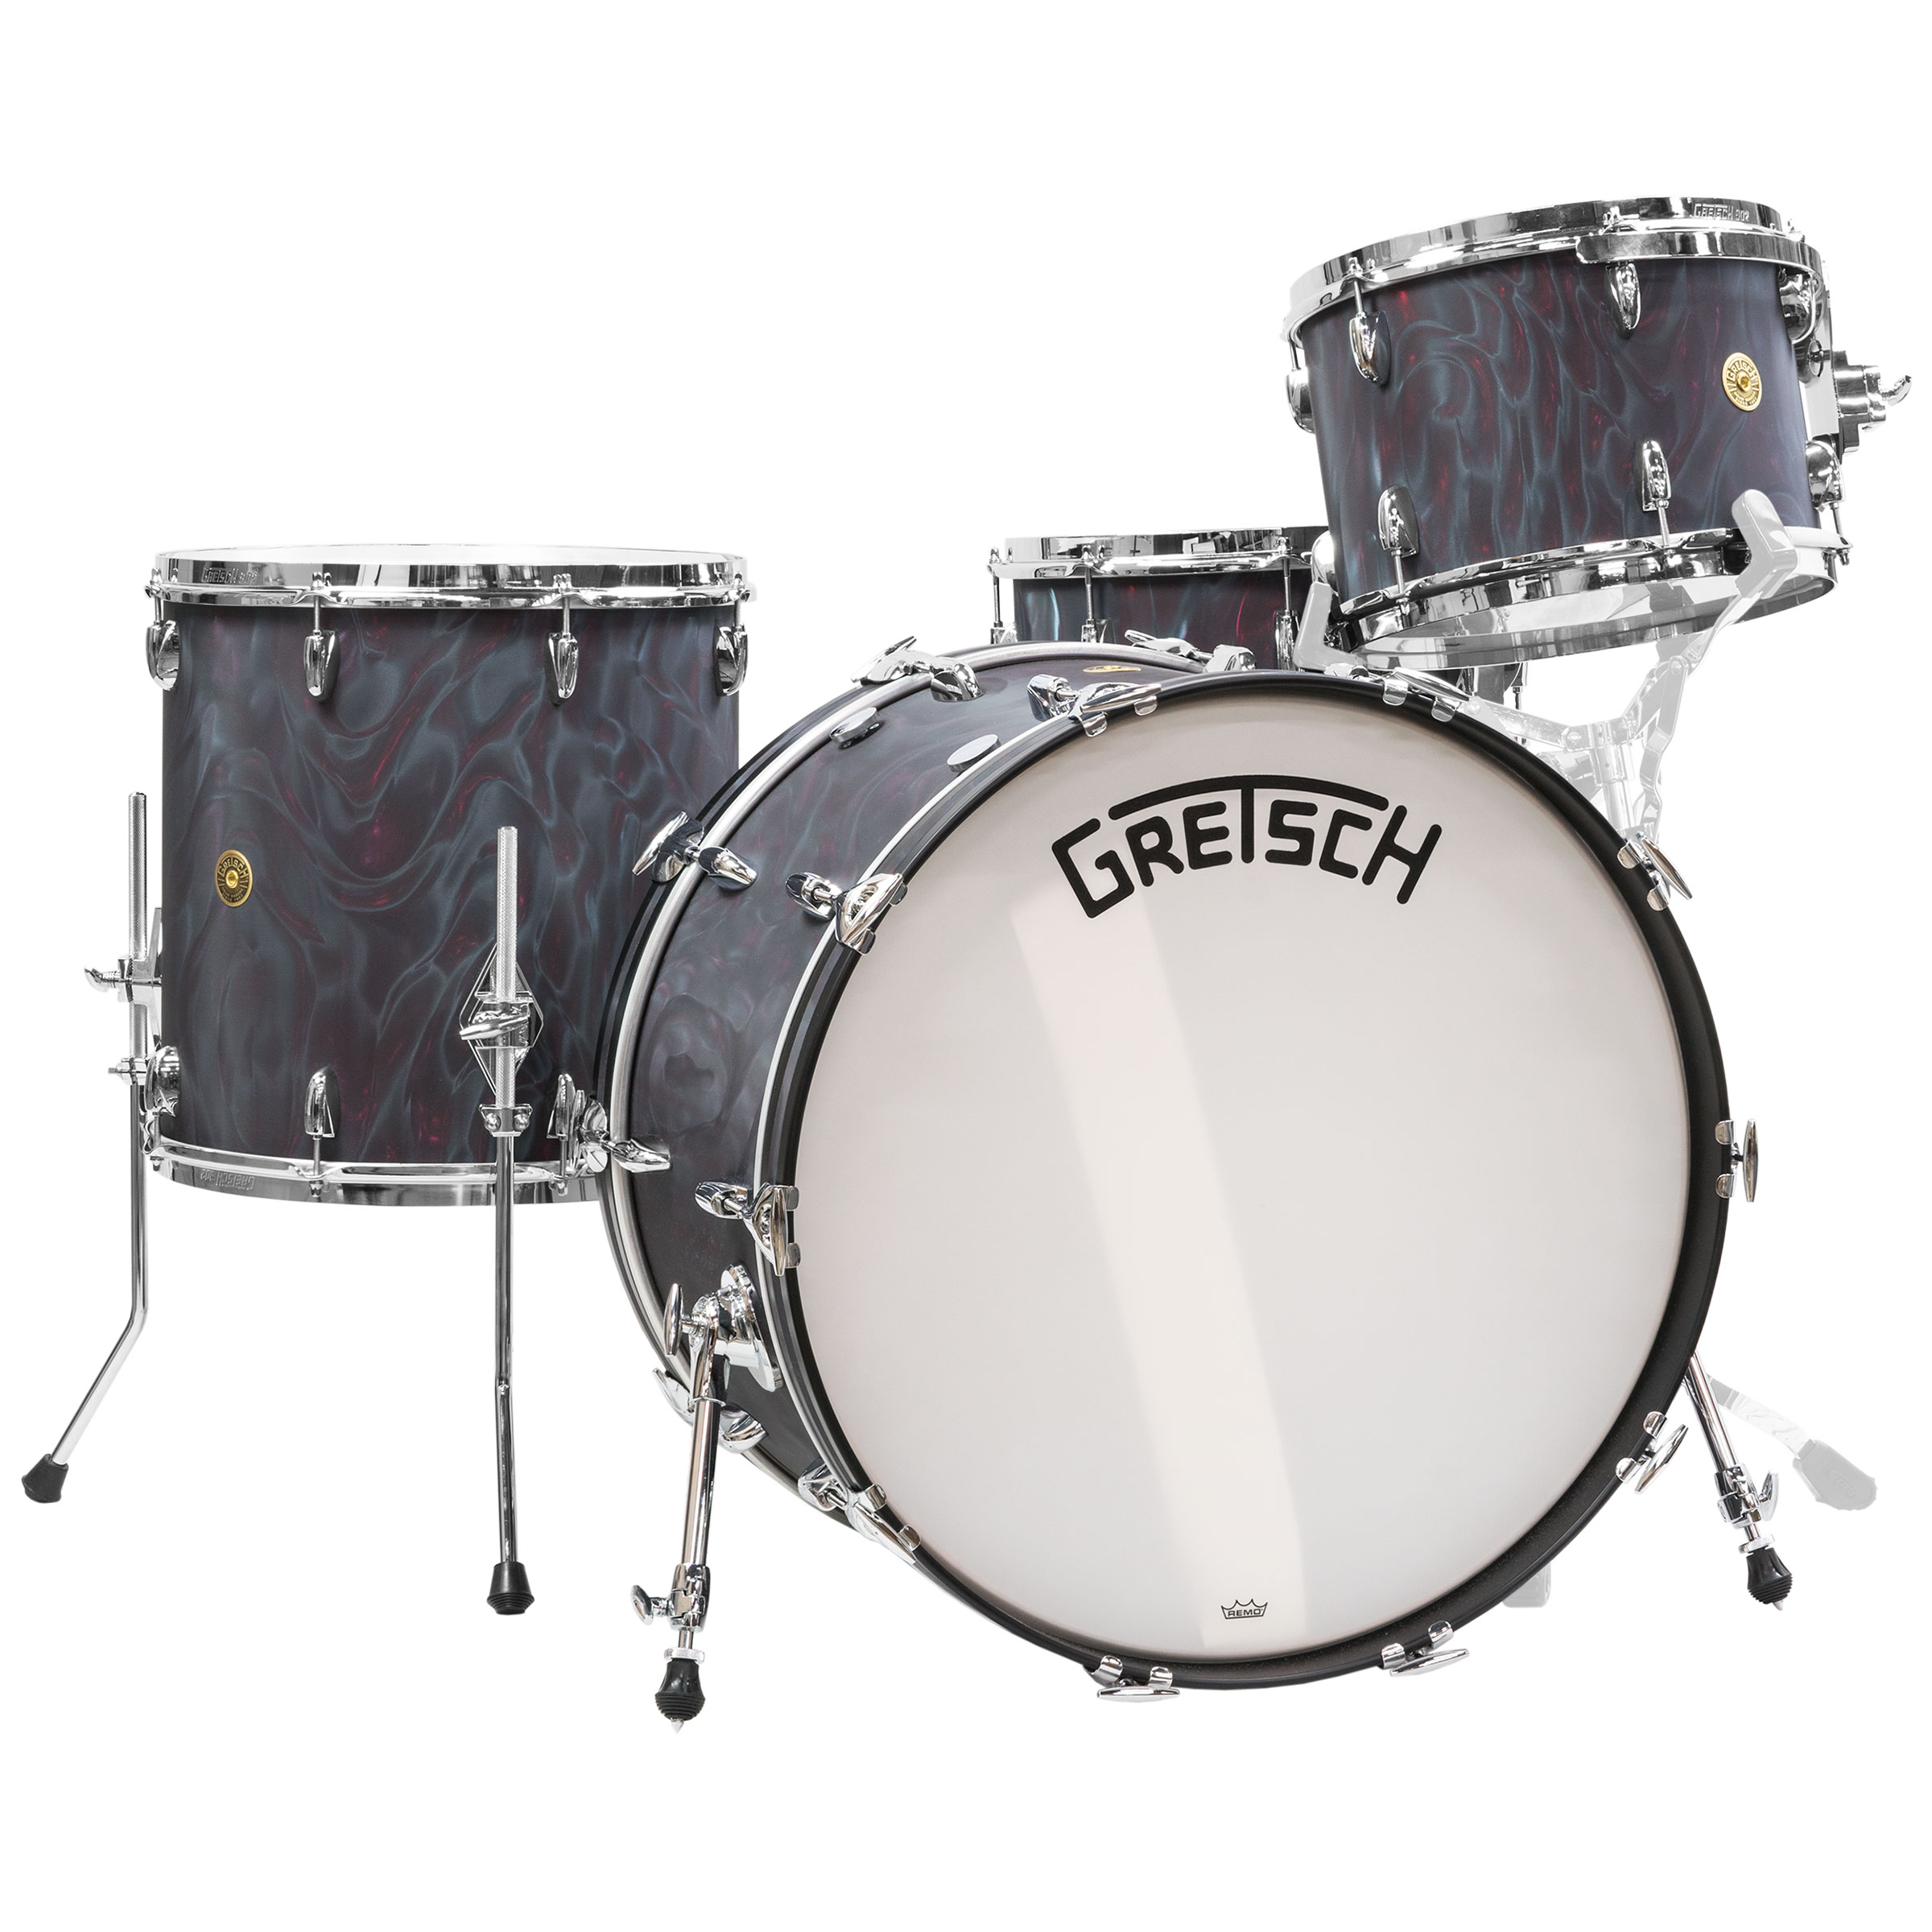 """Gretsch Broadkaster 4-Piece Drum Set Shell Pack (24"""" Bass, 13/16"""" Toms, 6.5 x 14"""" Snare) in Black Satin Flame"""